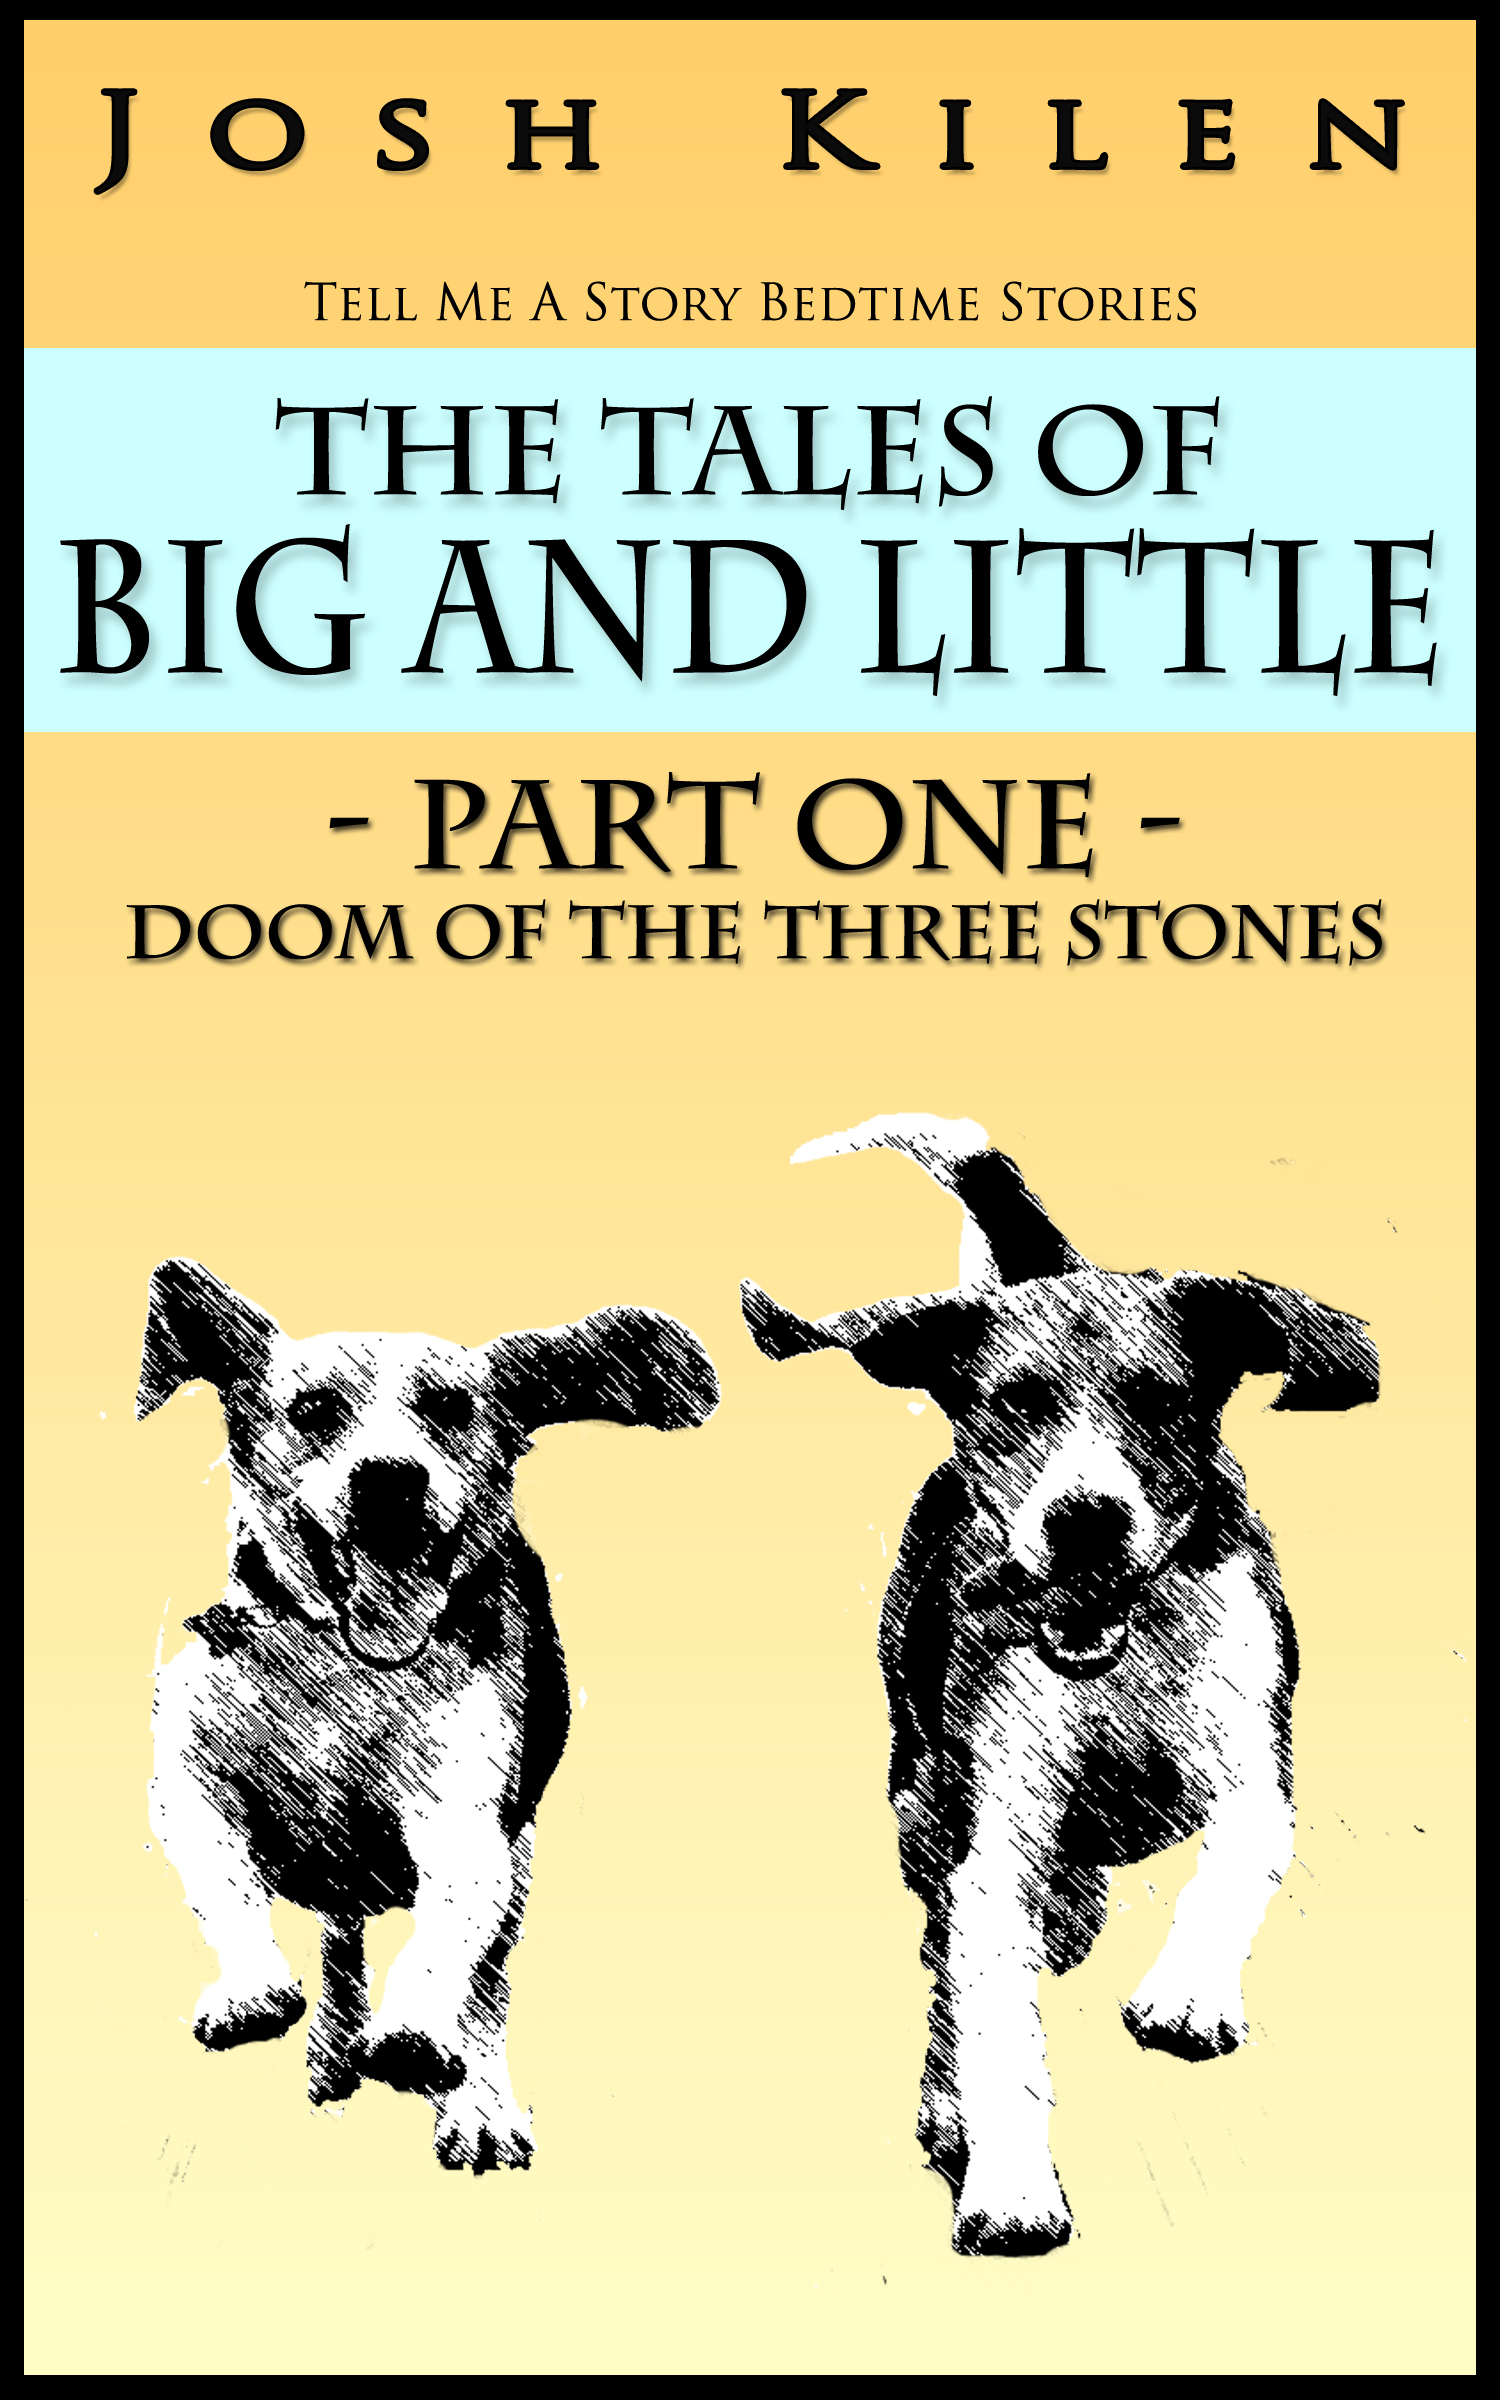 The Tales of Big and Little: Part One - Doom of the Three Stones